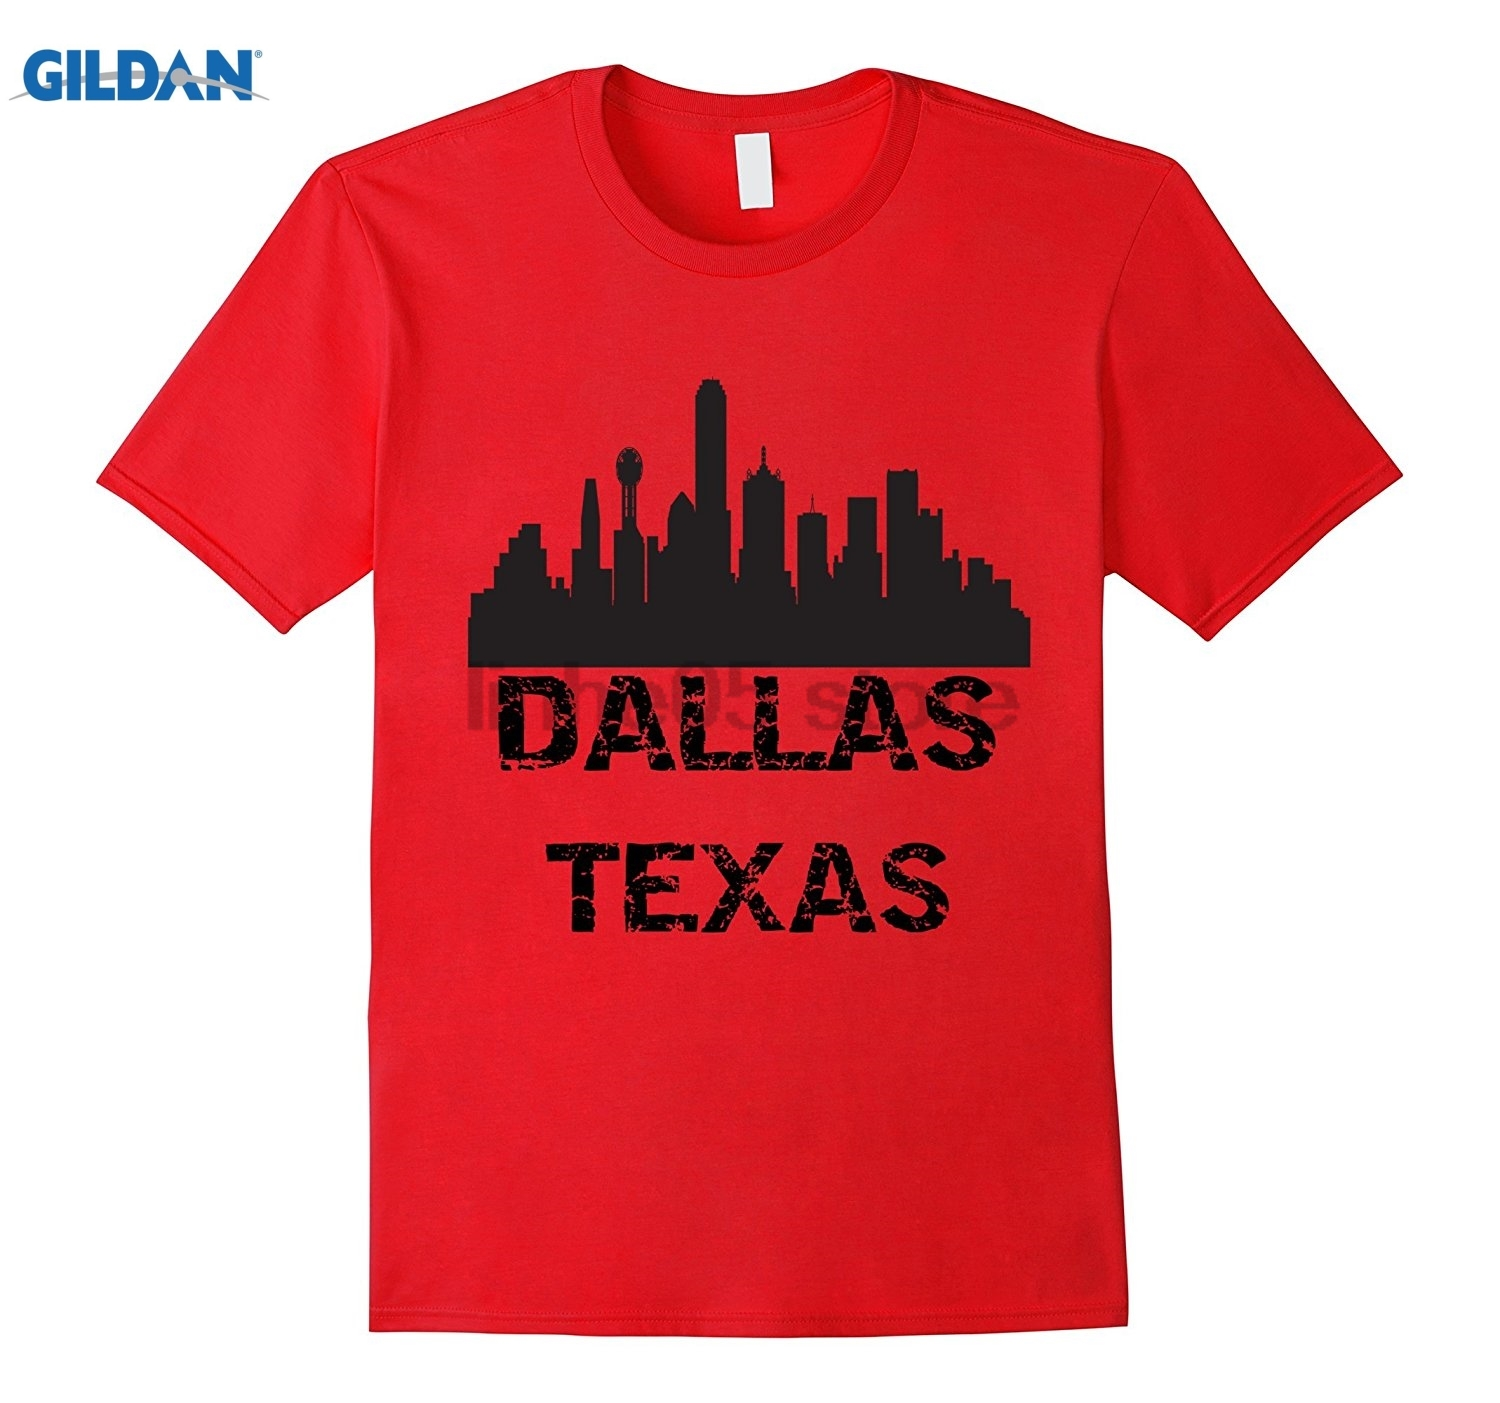 GILDAN Dallas Texas USA United States America City T-shirt Womens T-shirt